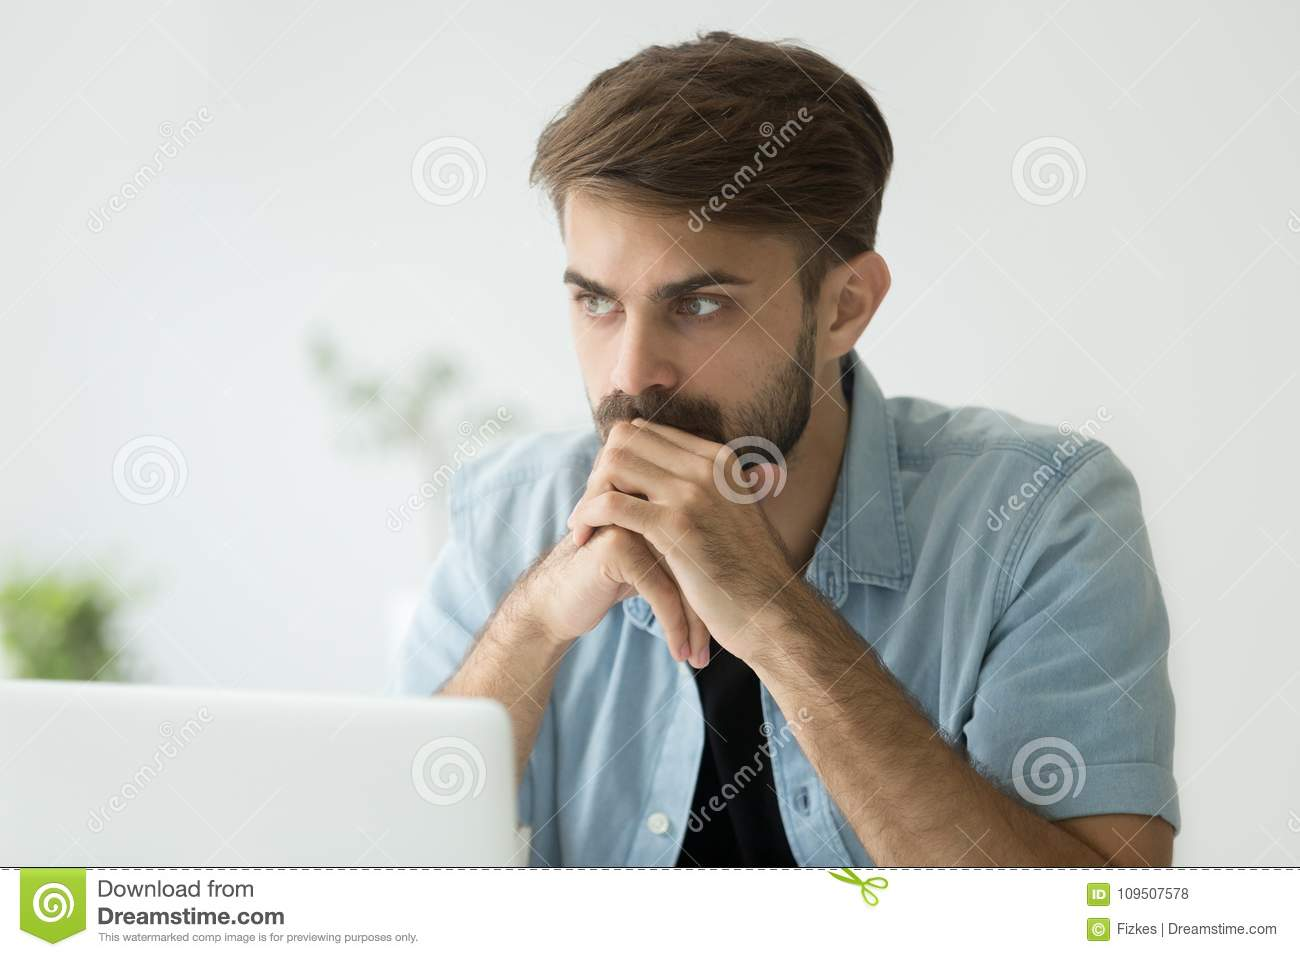 Thoughtful serious man lost in thoughts in front of laptop